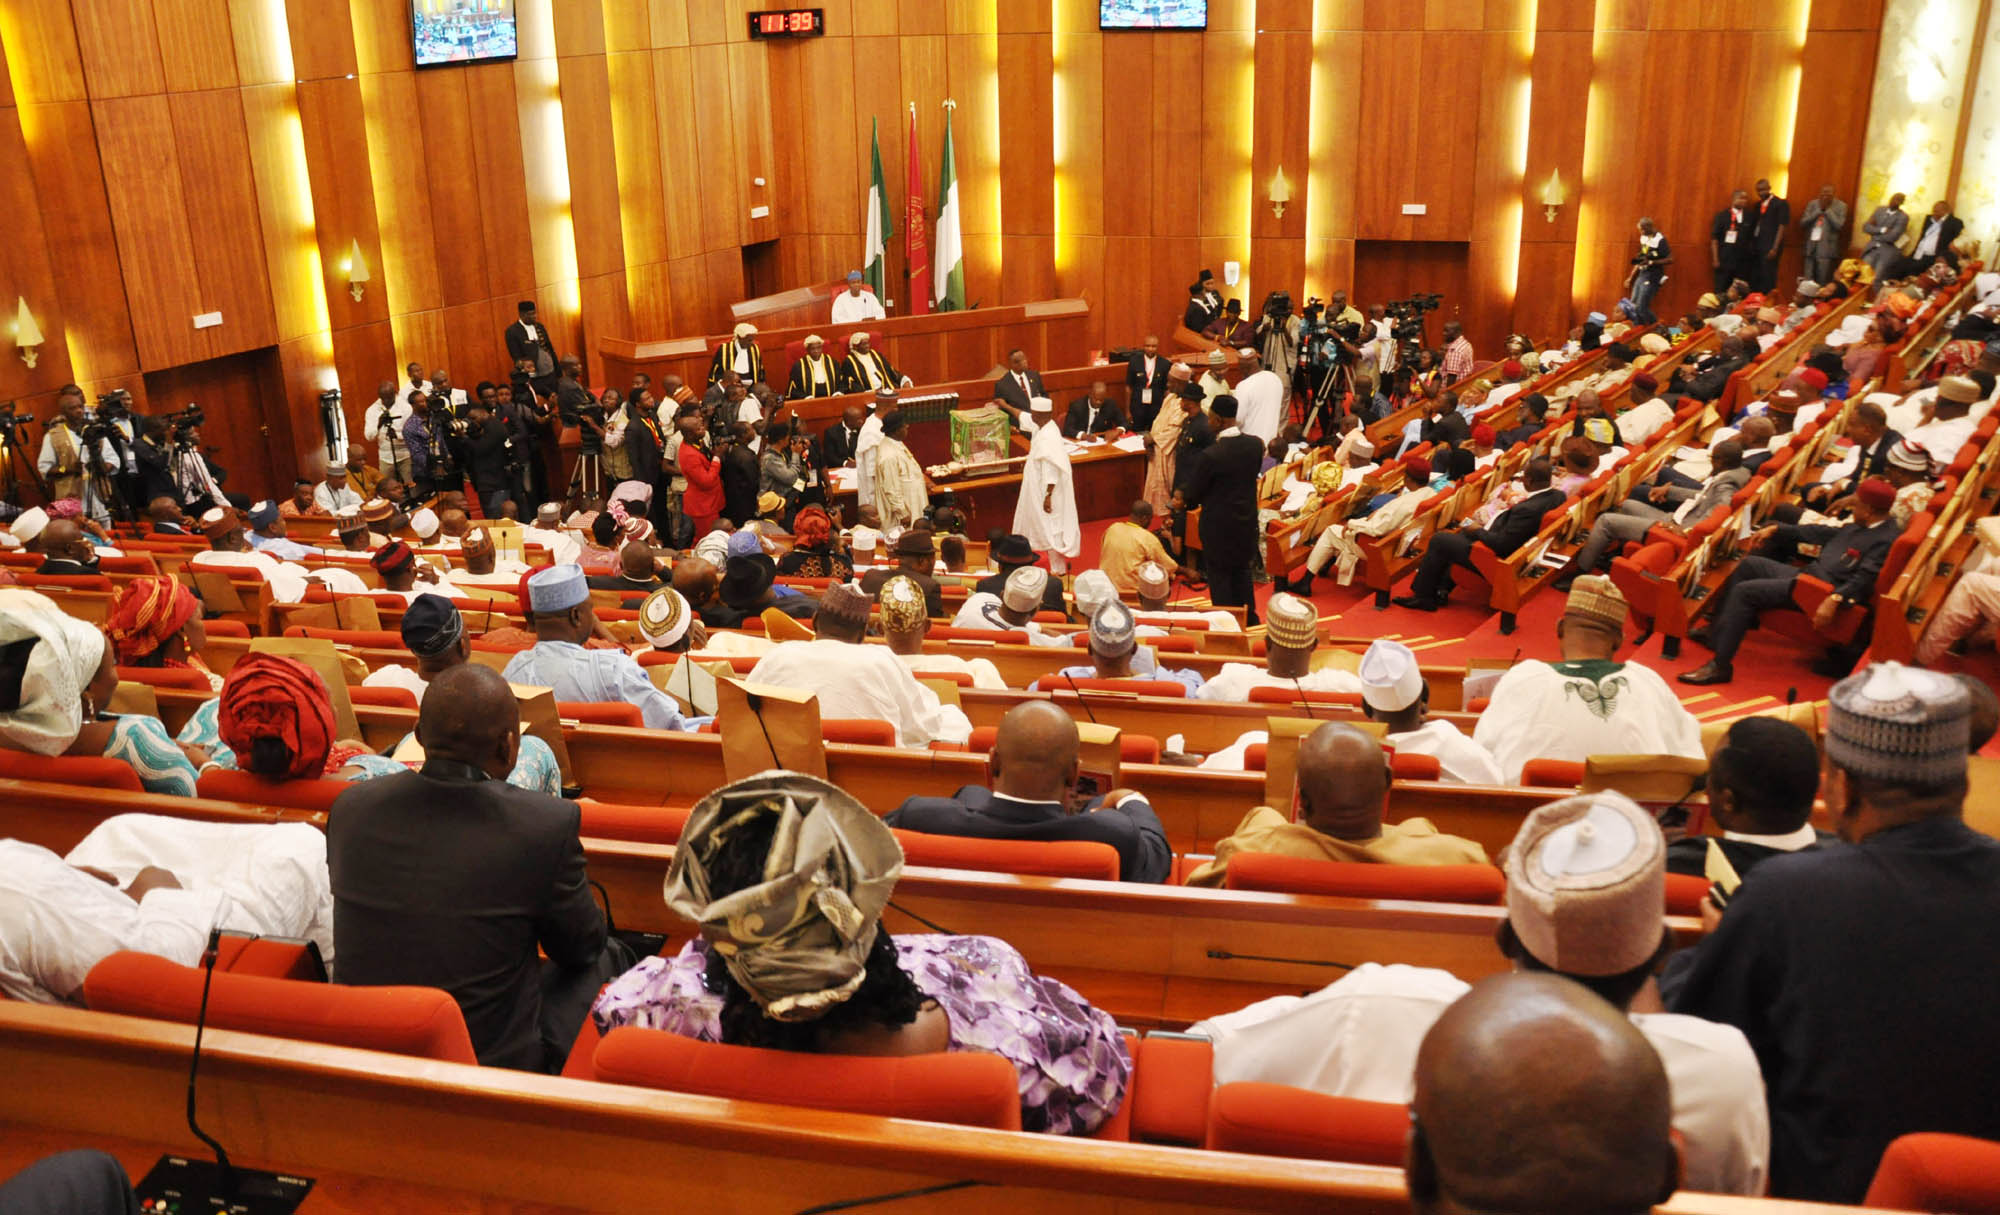 Senate Plenary Turns Rowdy Over Cross-Carpeting